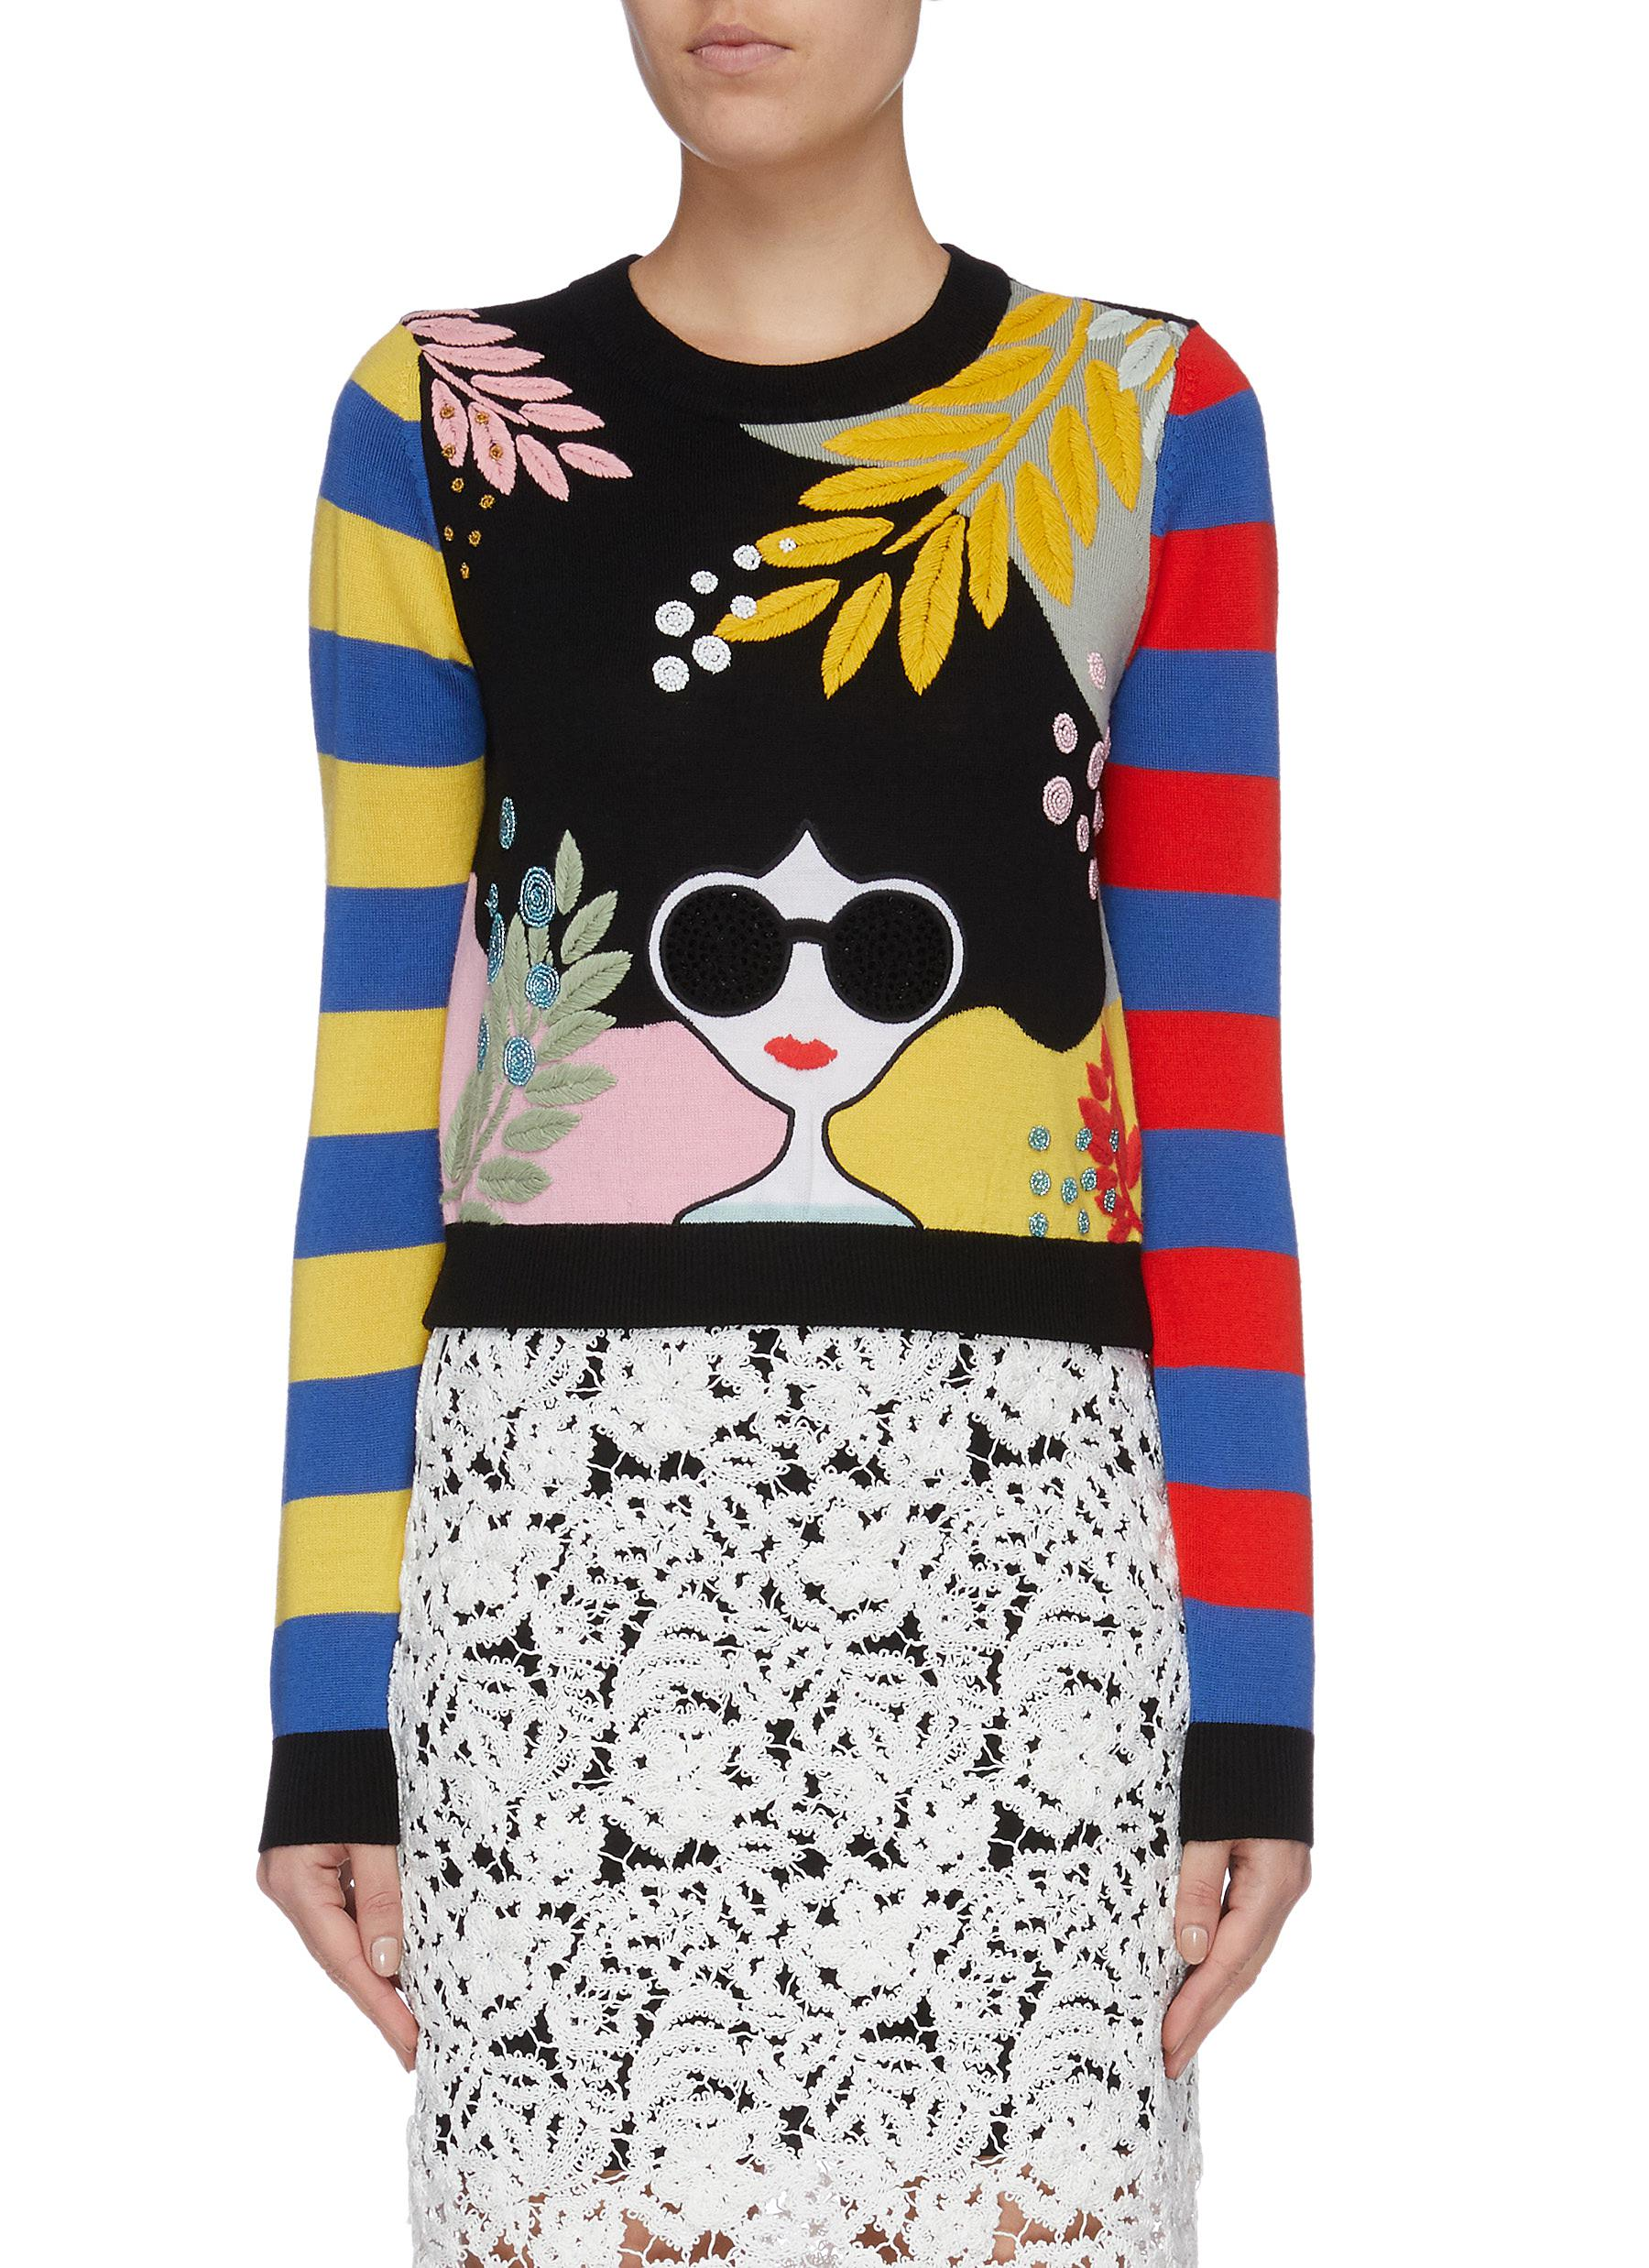 Killian stripe sleeve Stacey embellished sweater by Alice + Olivia